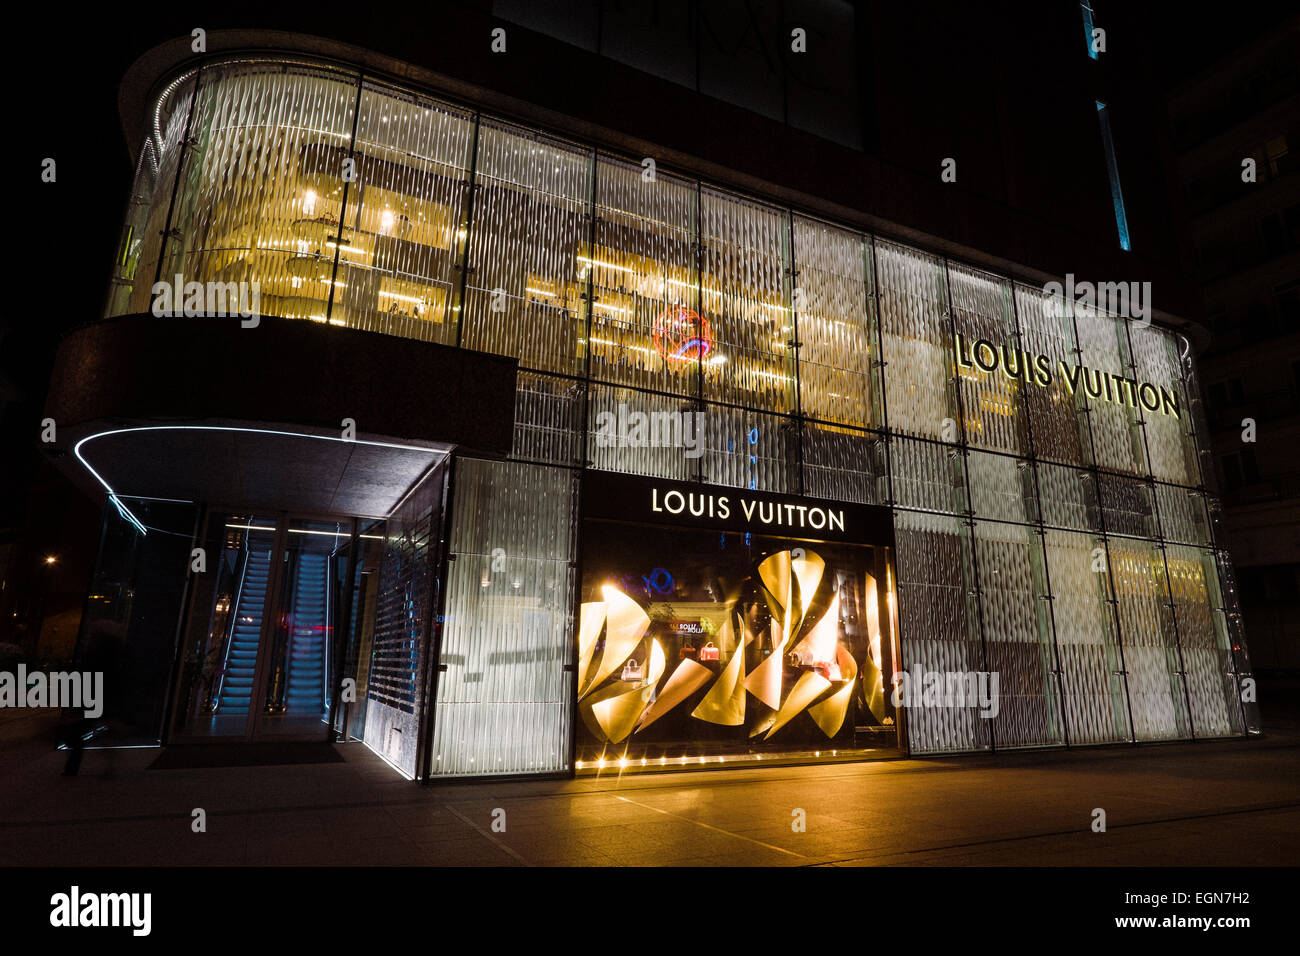 c470c5afb6cf3 Louis Vuitton store in Warsaw, Poland Stock Photo: 79142926 - Alamy